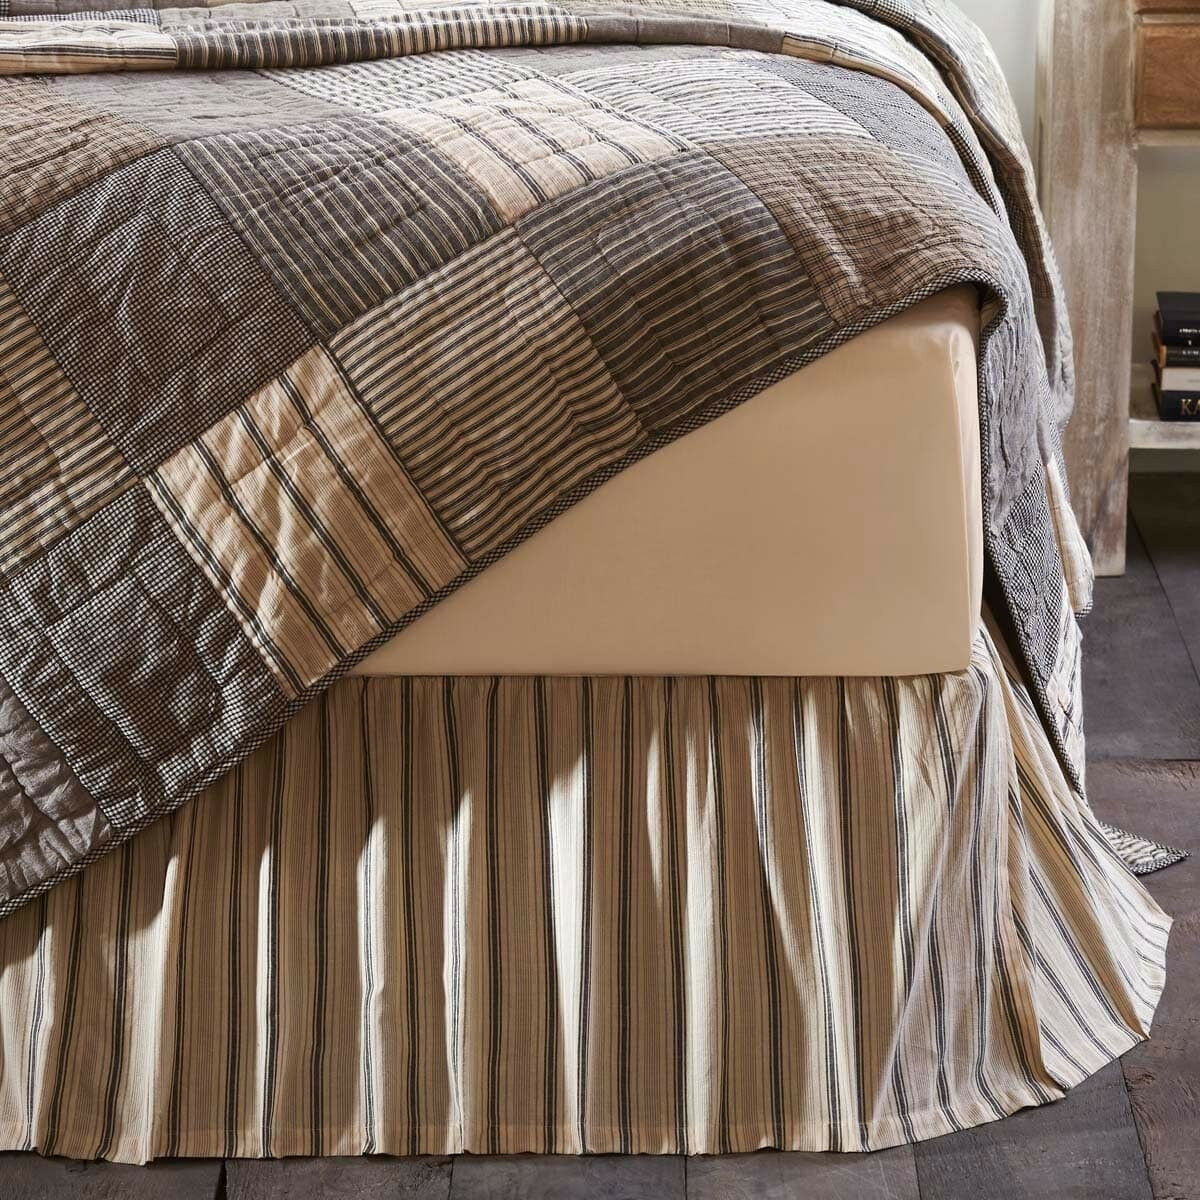 KING Bed Skirt Striped Rustic French Country 100% Cotton Farmhouse Shabby Creme